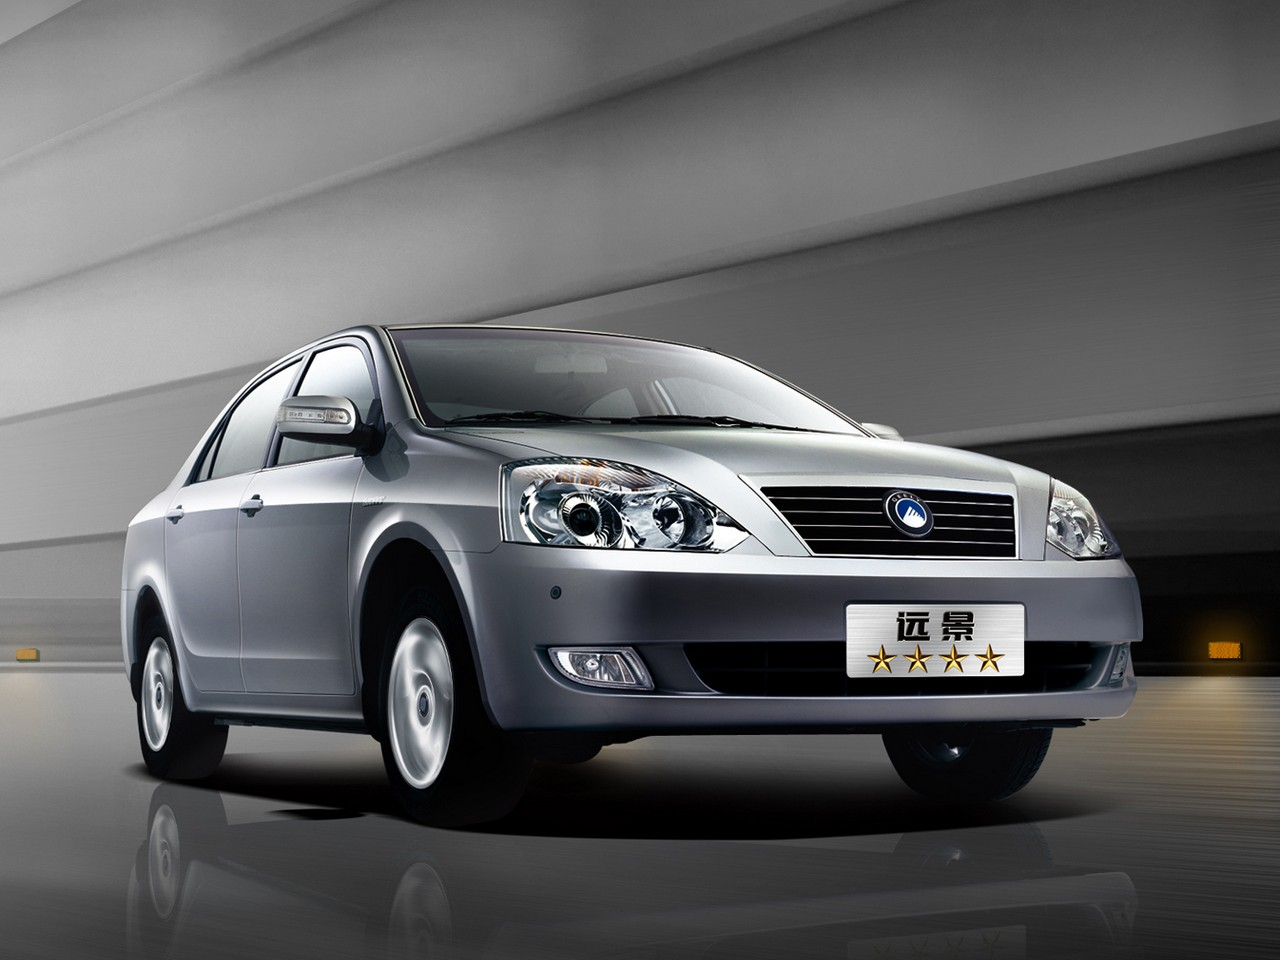 Geely vision photo - 4